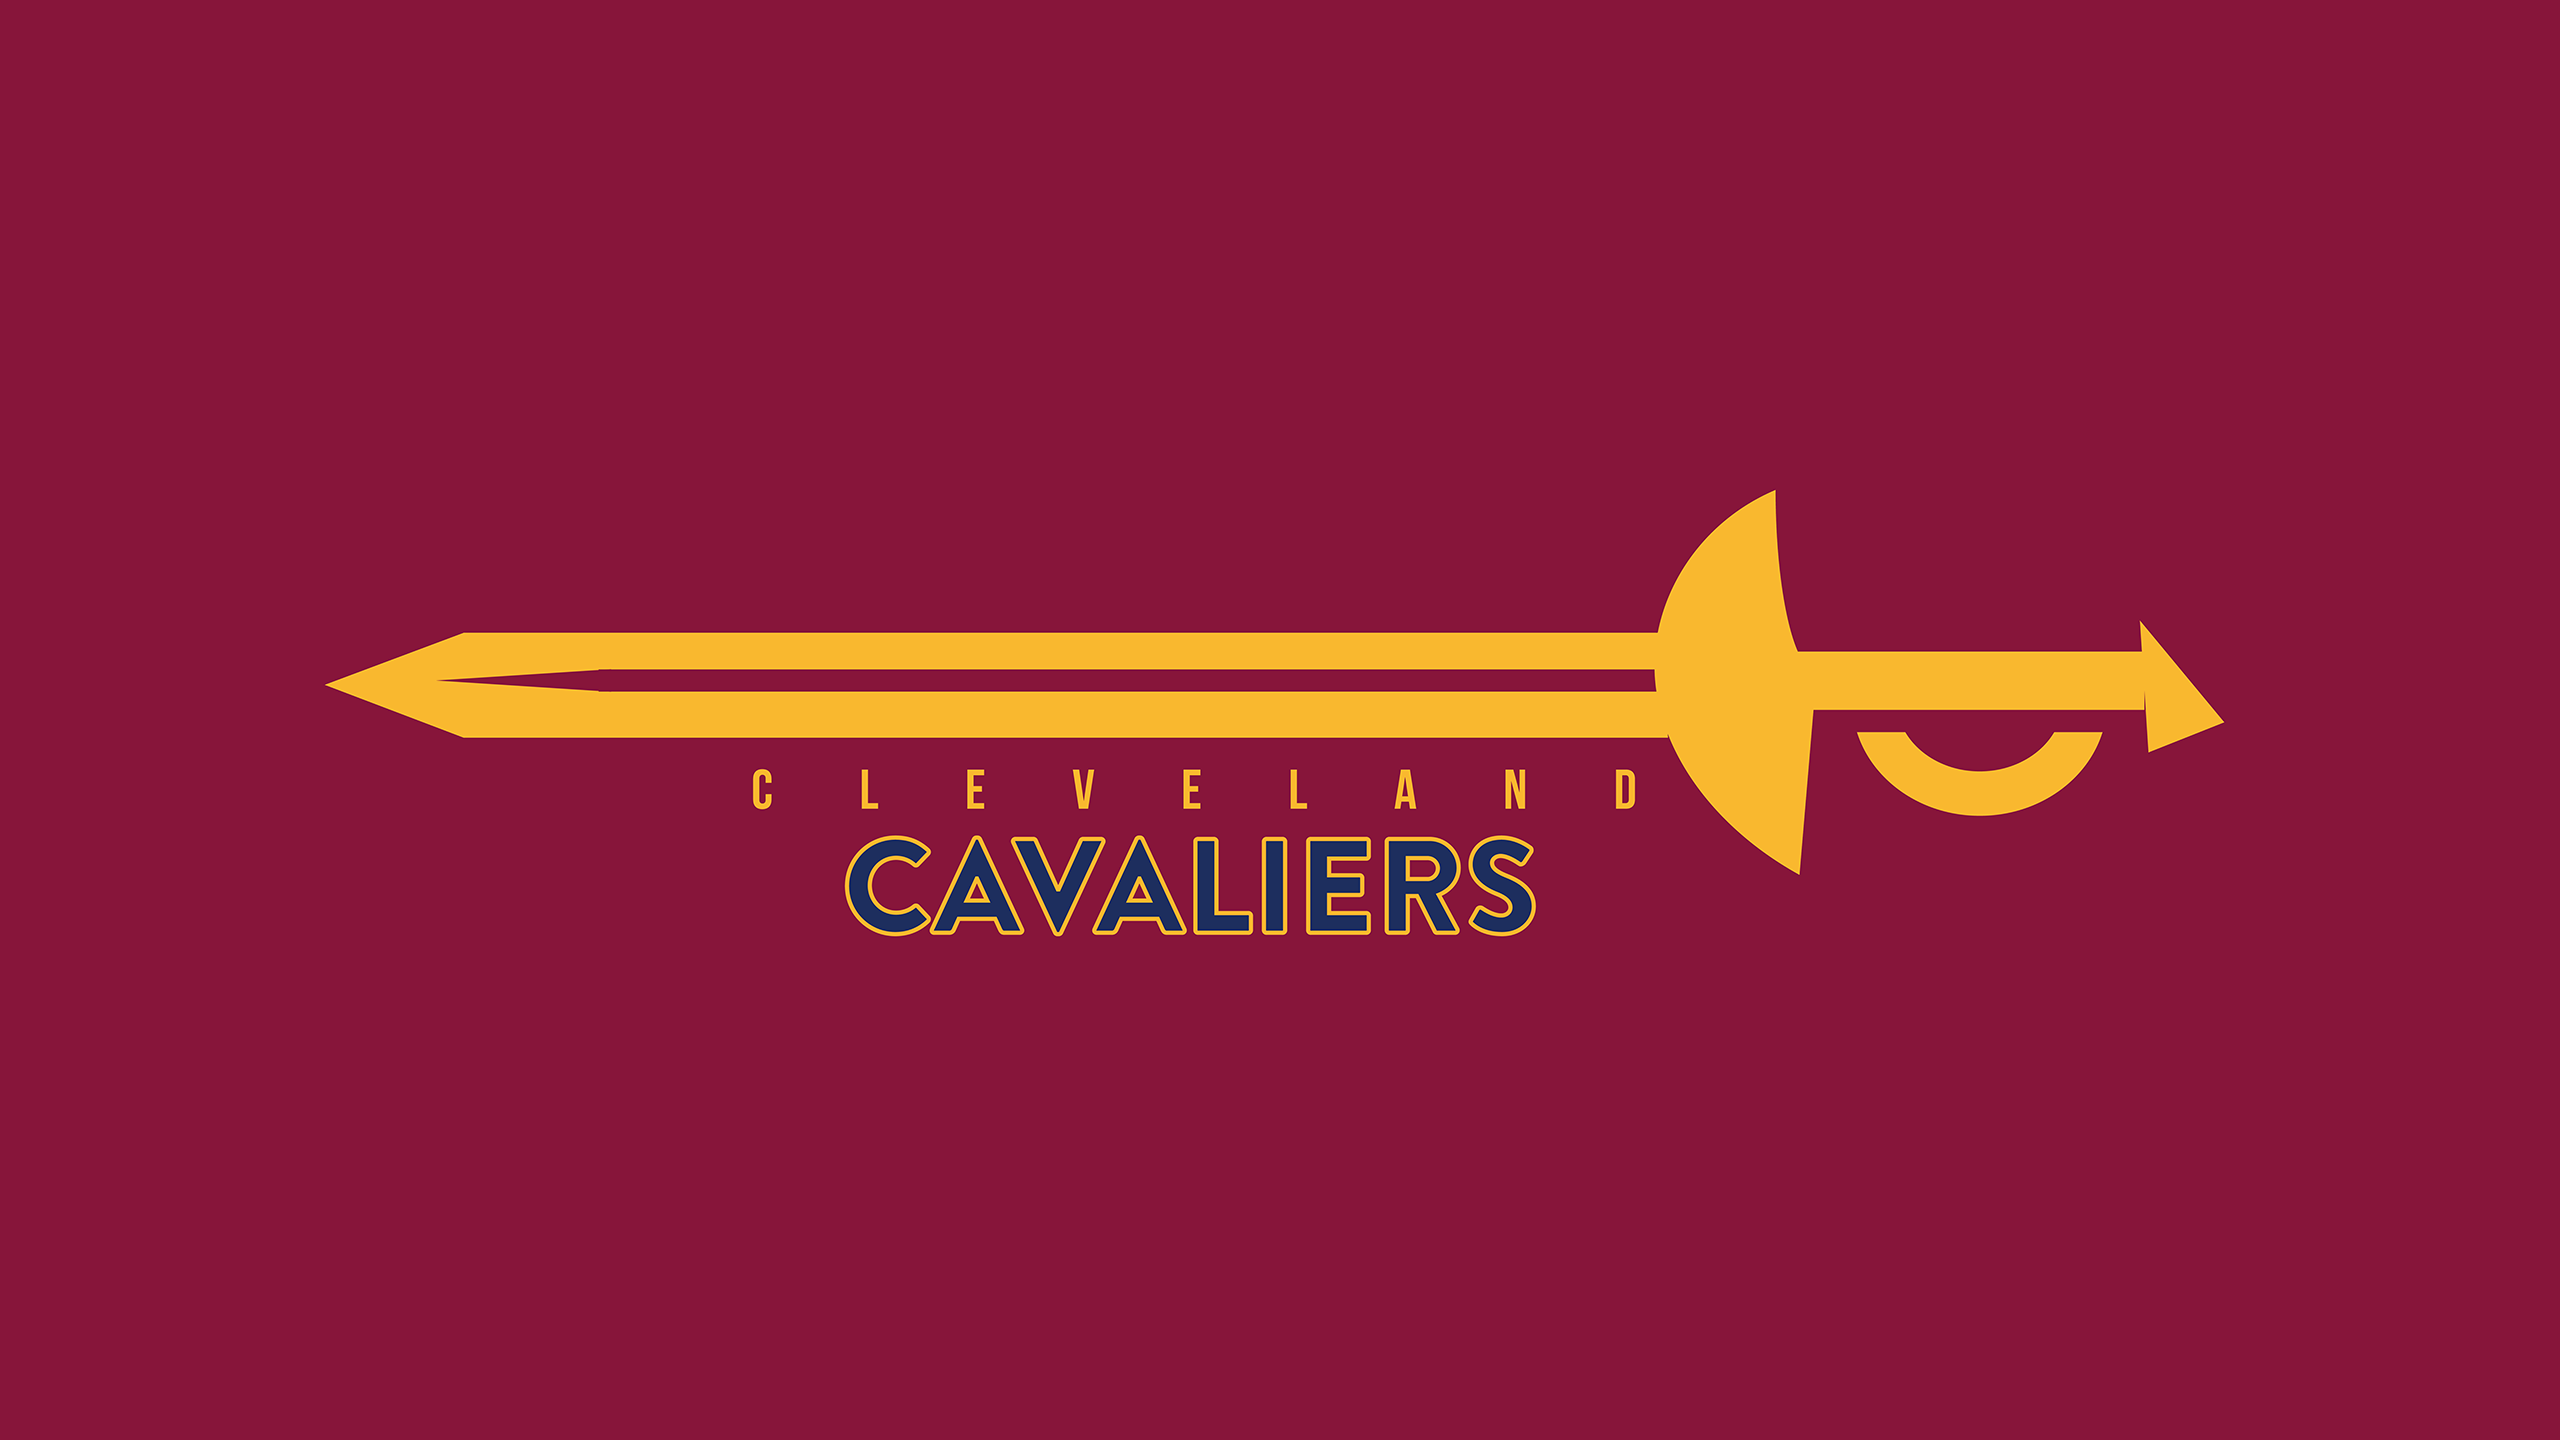 NBA Cleveland Cavaliers wallpaper HD desktop background 2016 in 2560x1440